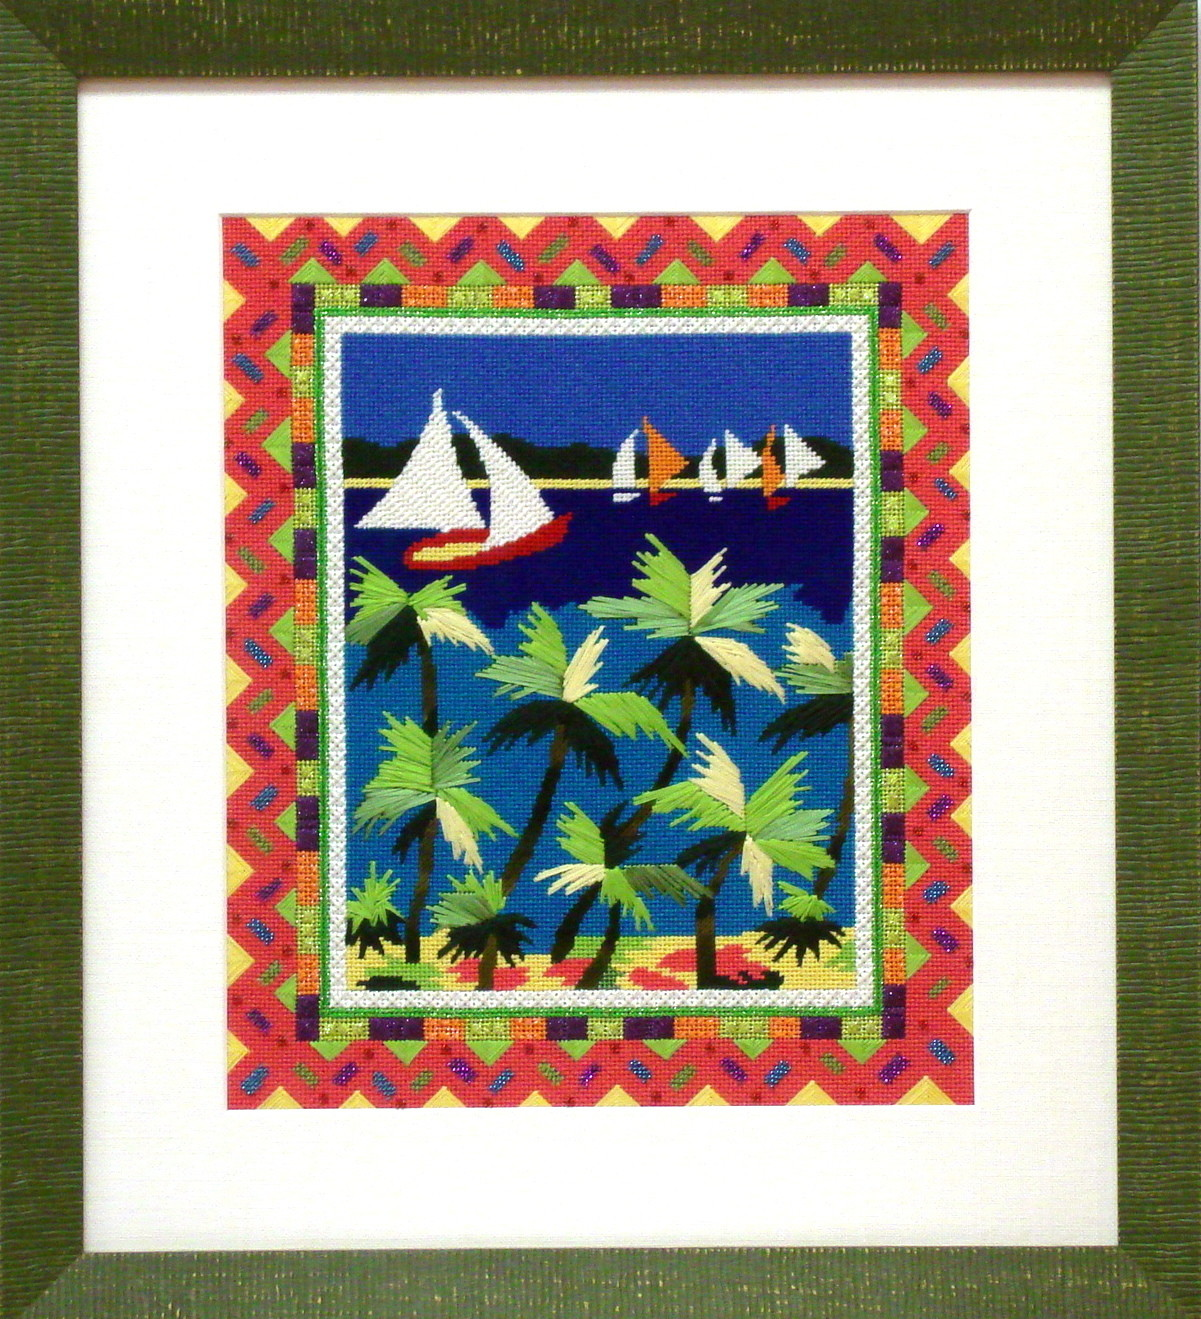 Savvy Sailing  (Model Shown)       (handpainted by Julia's Needlework)